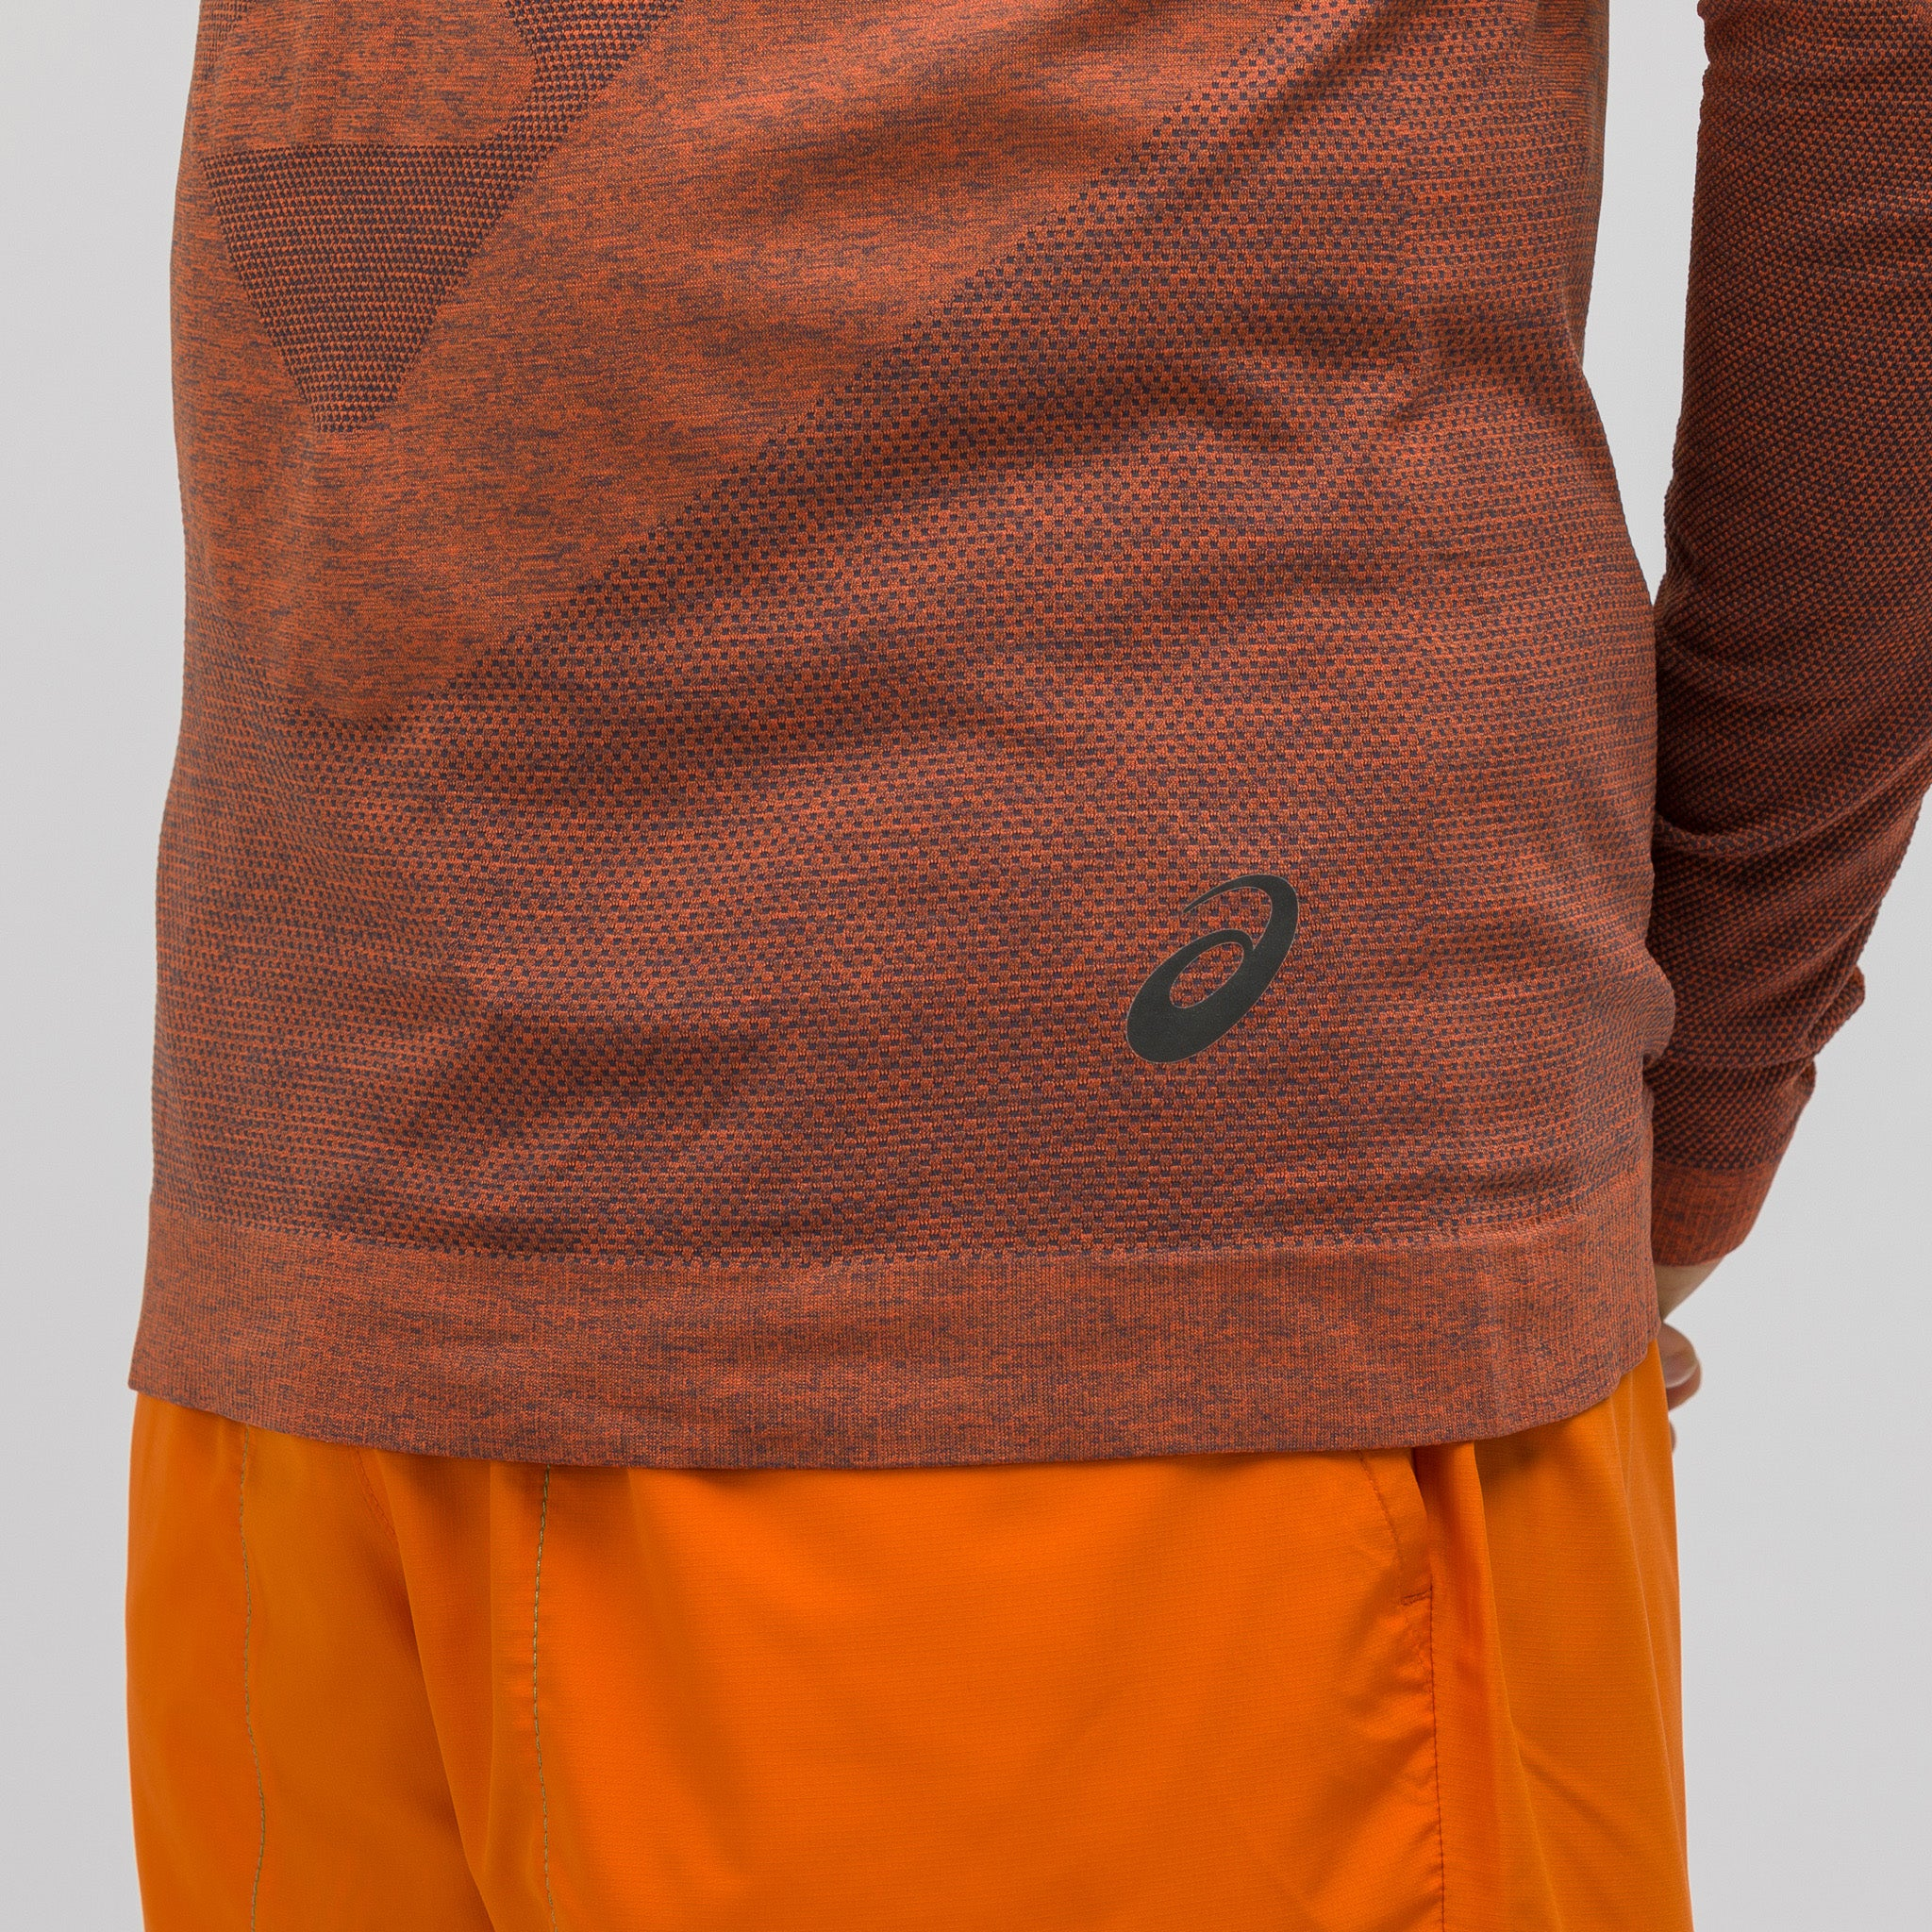 x Kiko Kostadinov Long Sleeve Seamless Top in Nova Orange